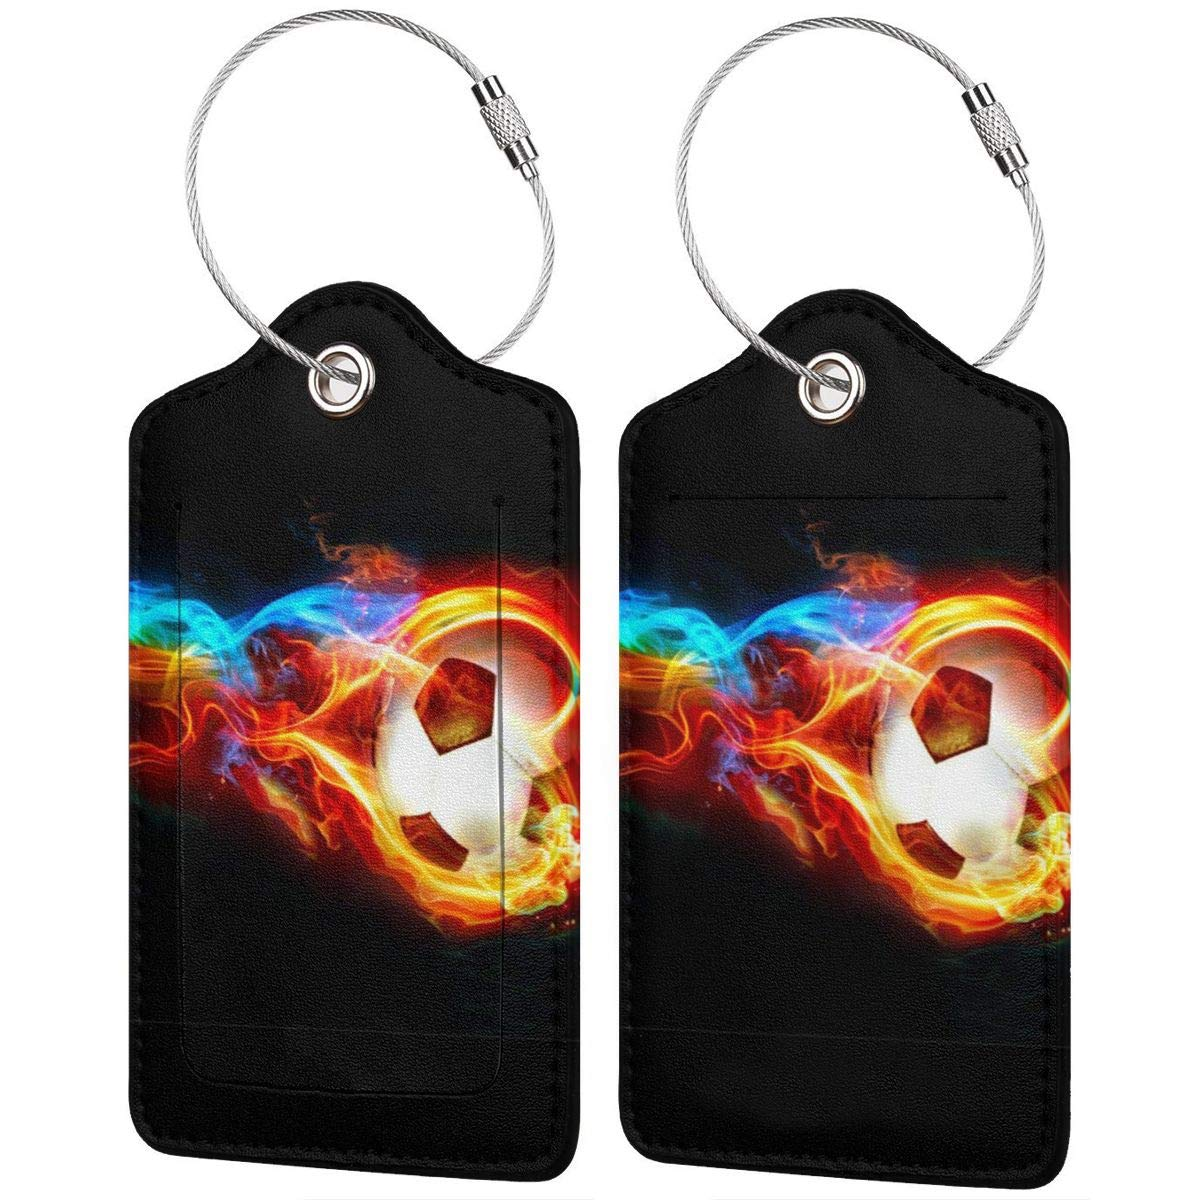 Leather Luggage Tag Flame Soccer Ball Fire Luggage Tags For Suitcase Travel Lover Gifts For Men Women 2 PCS